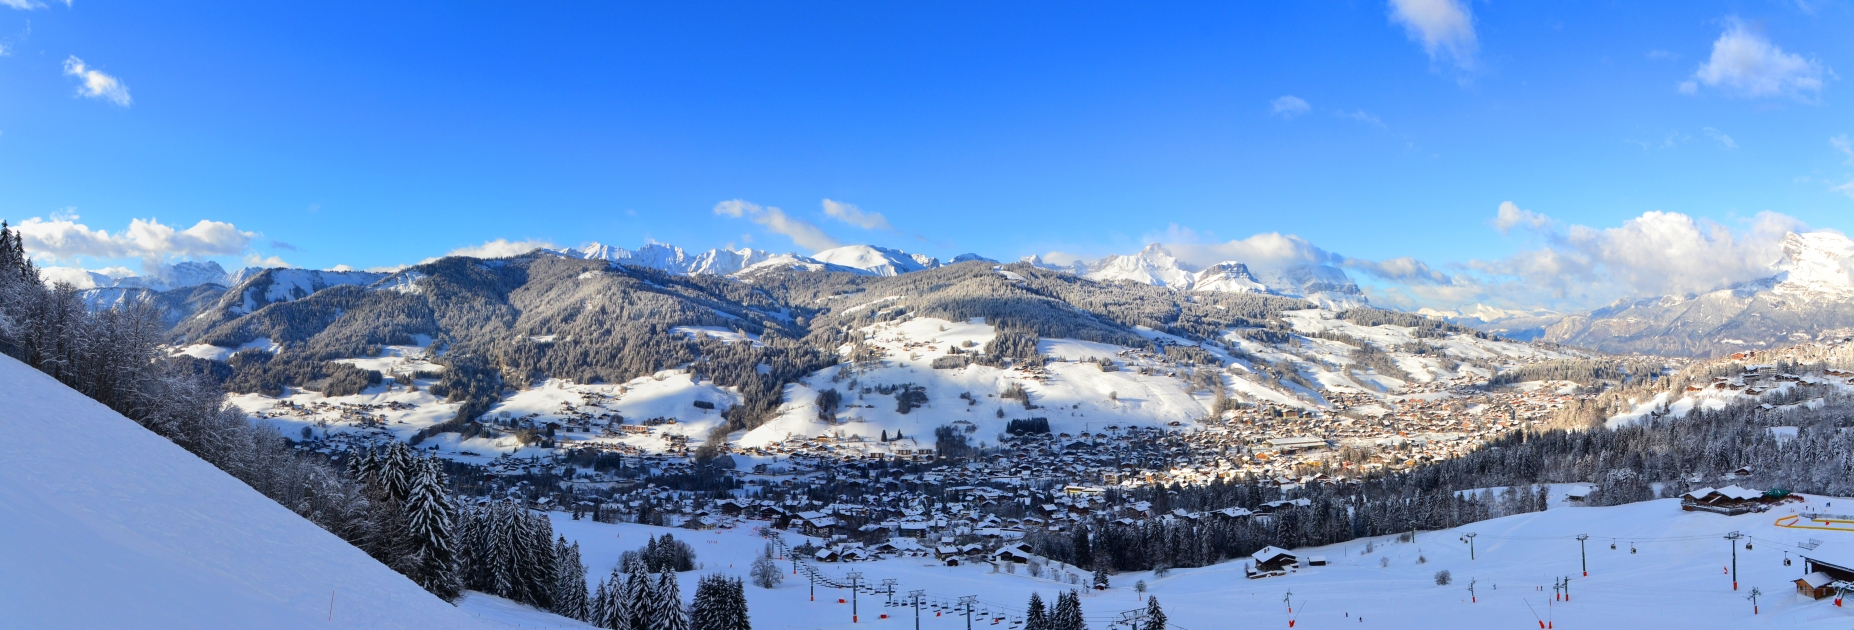 megeve_pano